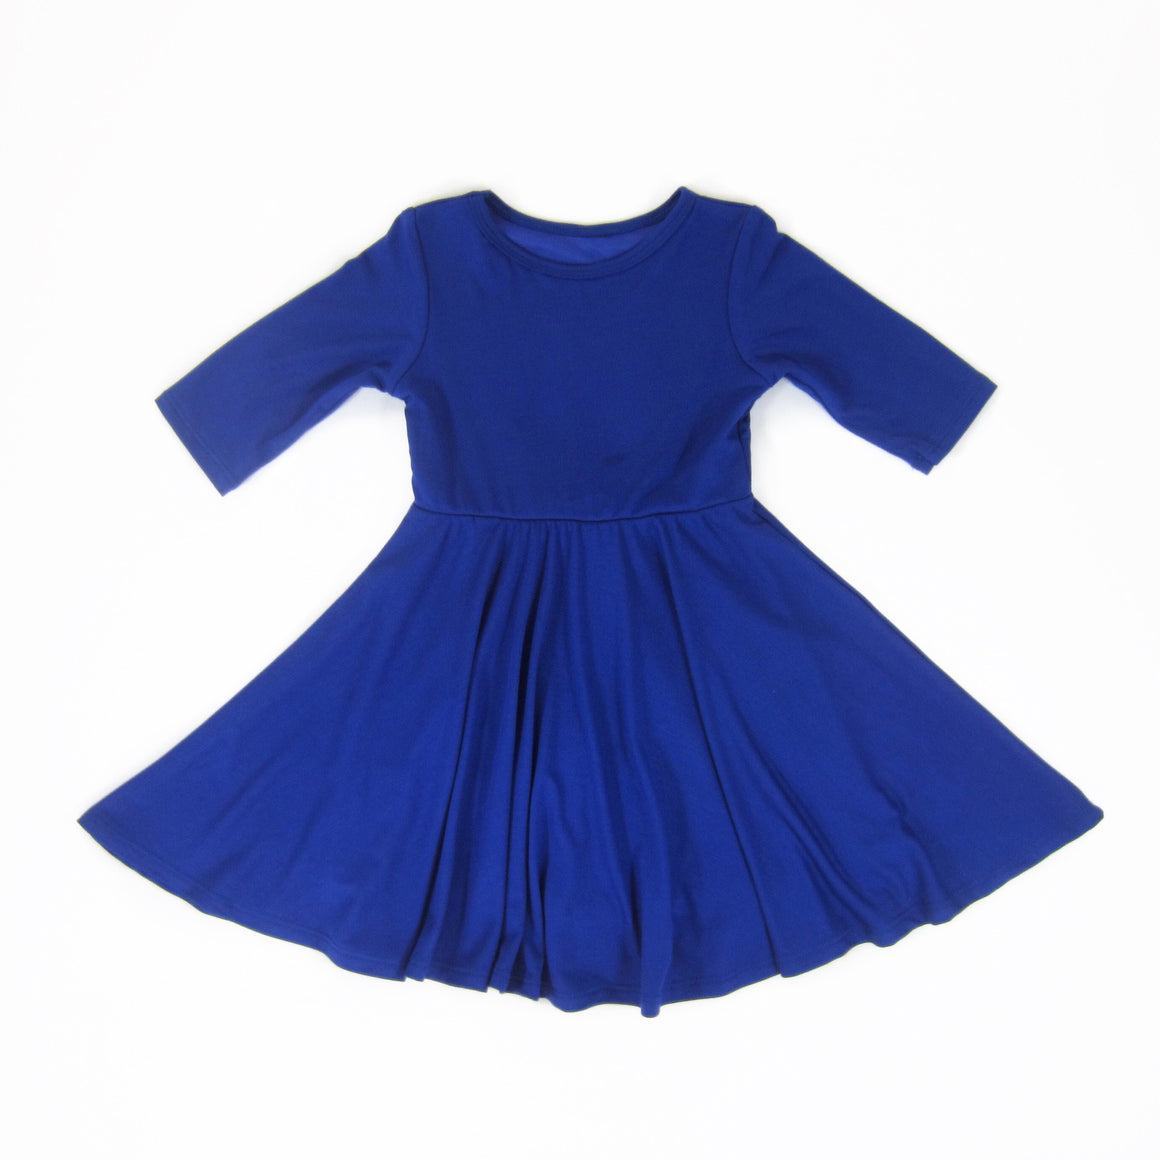 Girls Royal Blue Twirl Dress | Liberty Lark